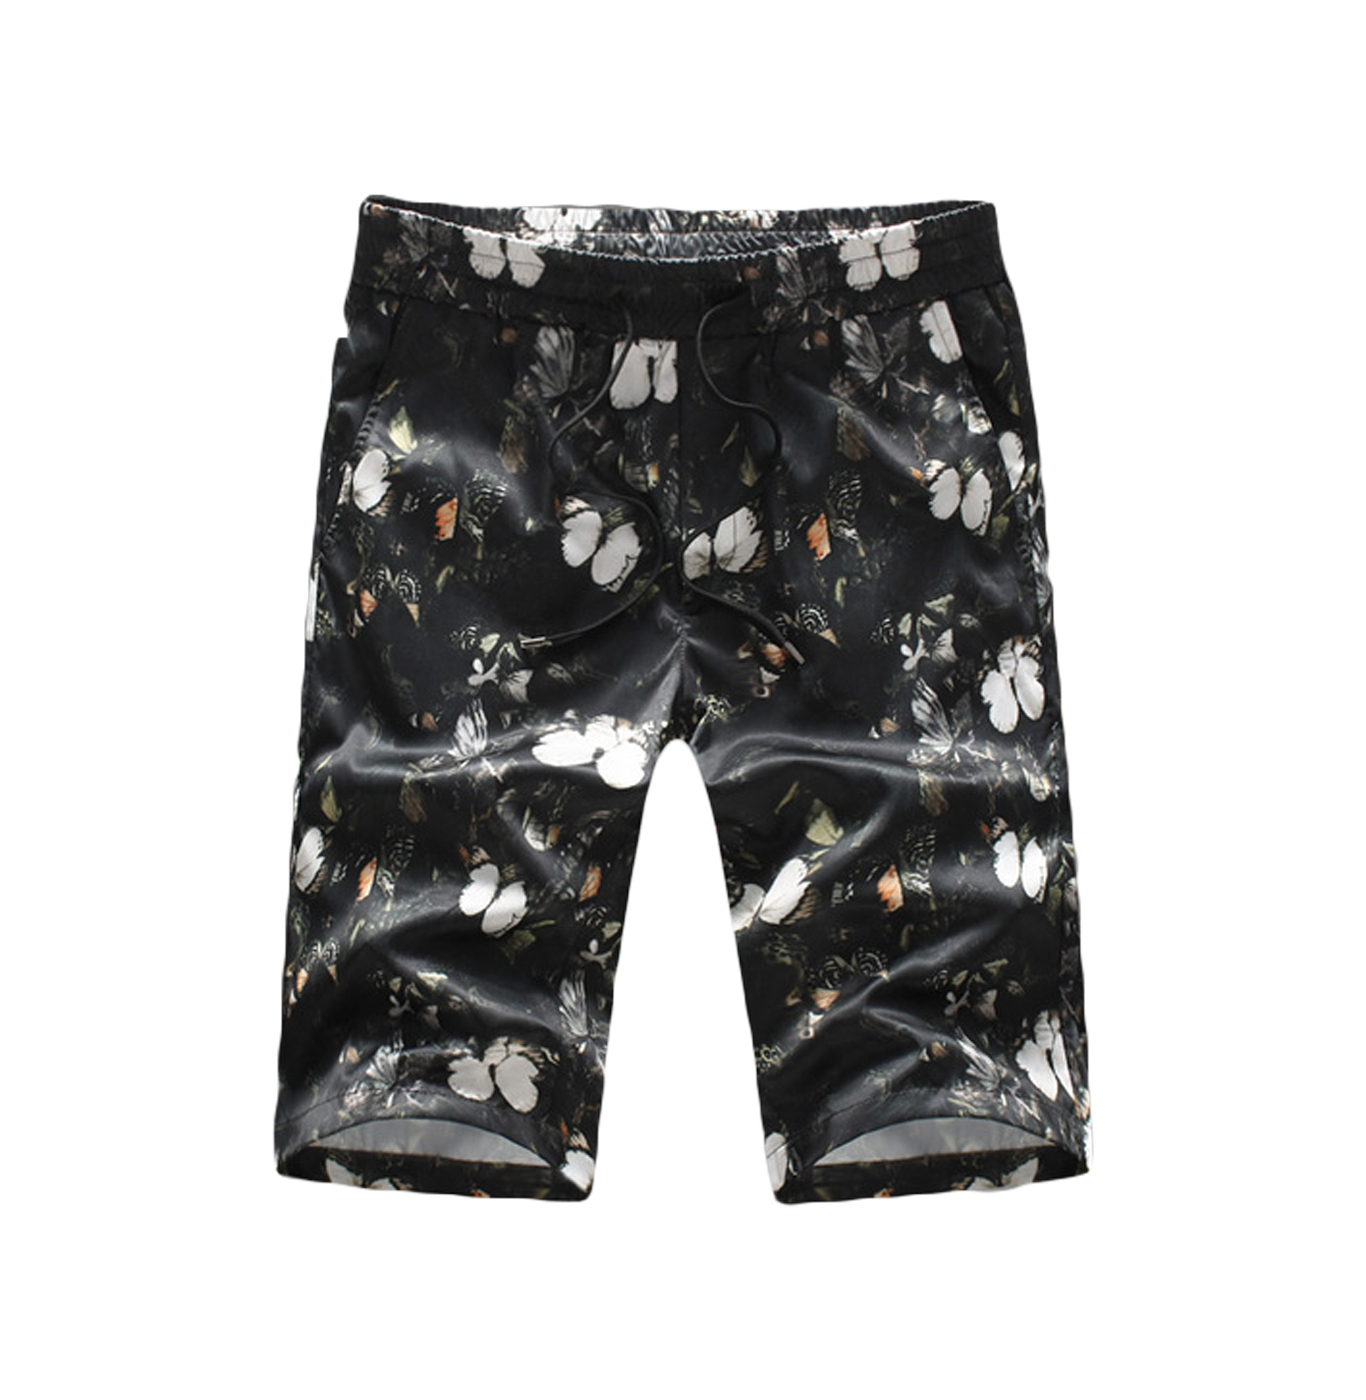 mens black floral shorts